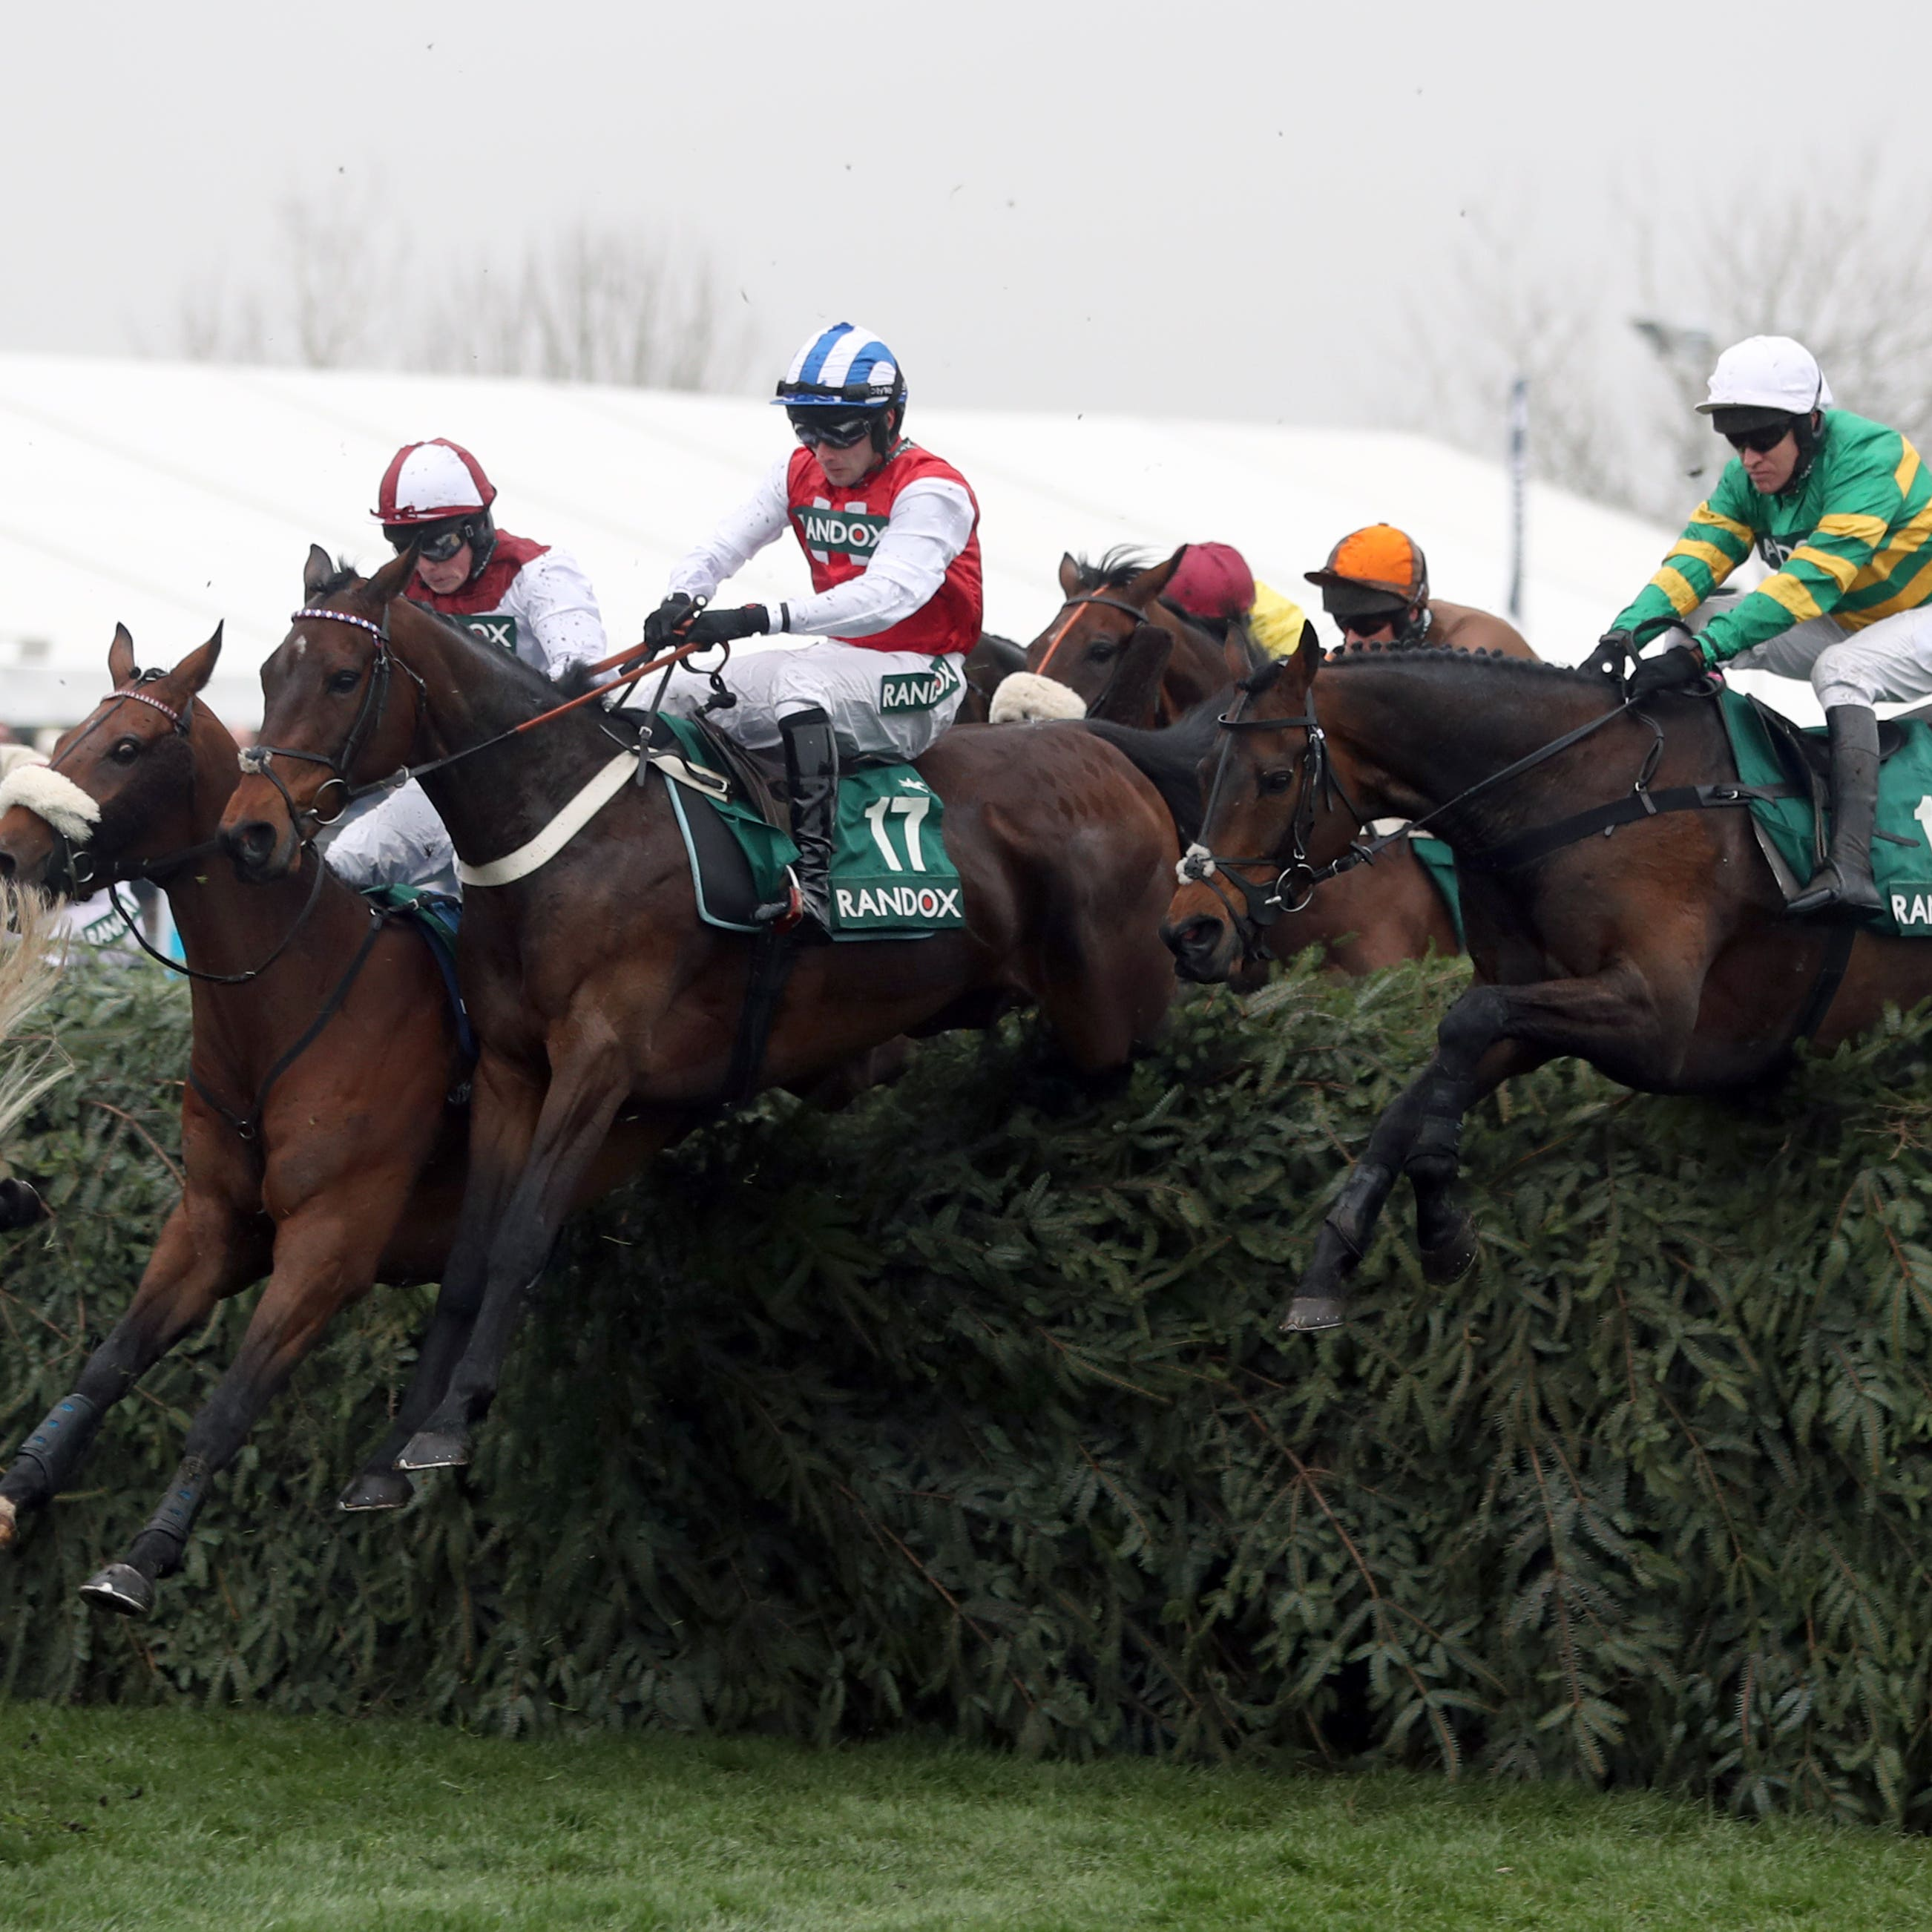 Horses take a fence in the Topham Chase which is the target for Ross O'Sullivan's Call It Magic